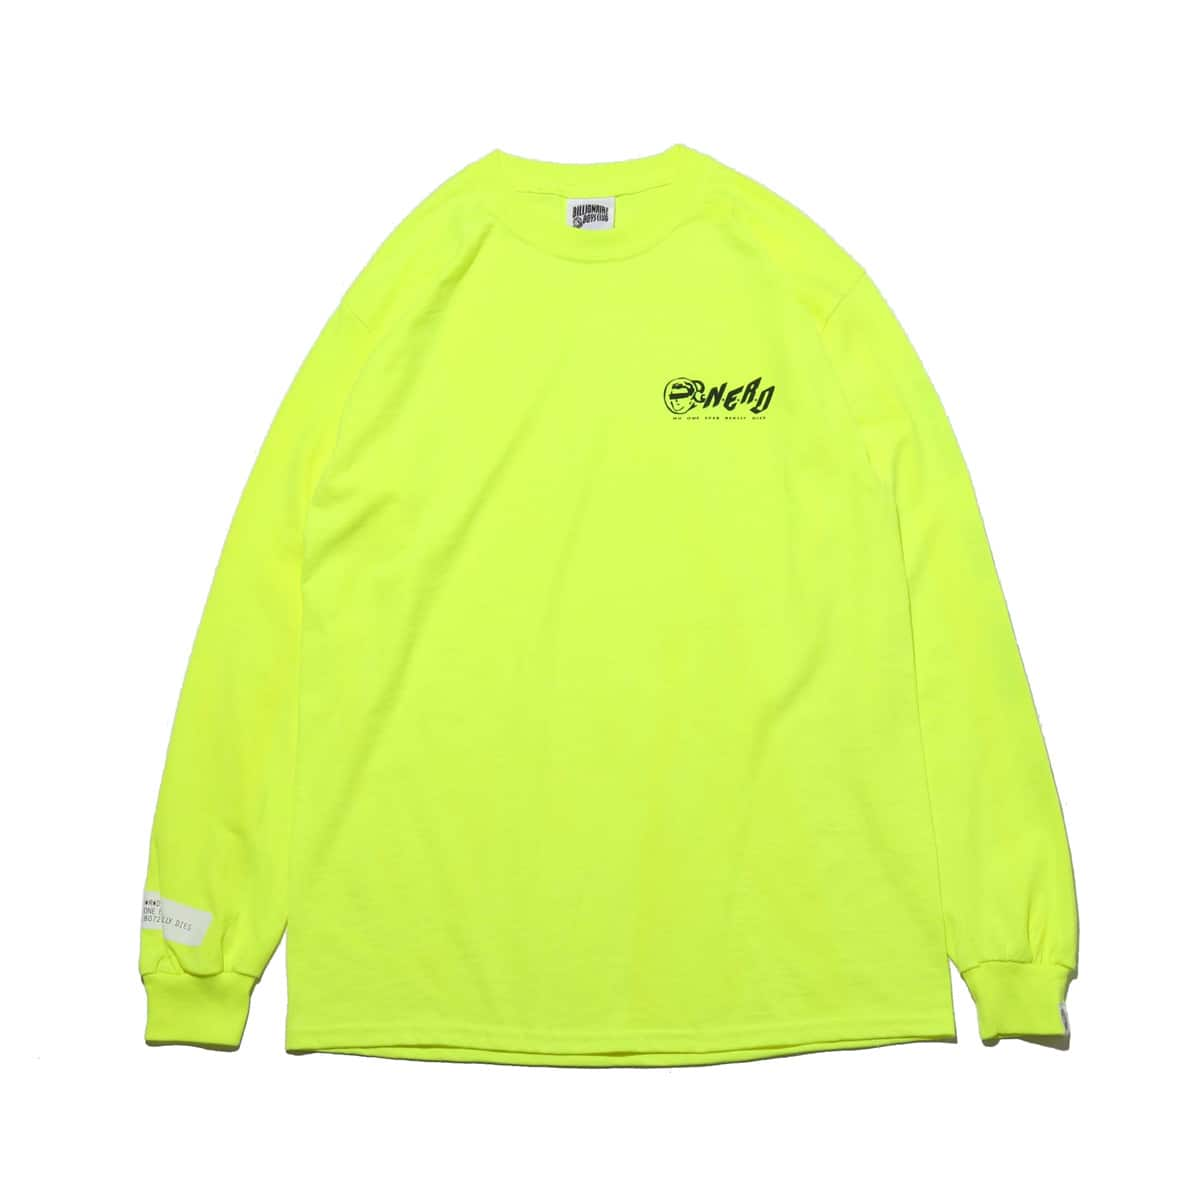 BILLIONAIRE BOYS CLUB x N.E.R.D LONG T-SHIRTS_N.E.R.D  SAFETY GREEN_photo_large